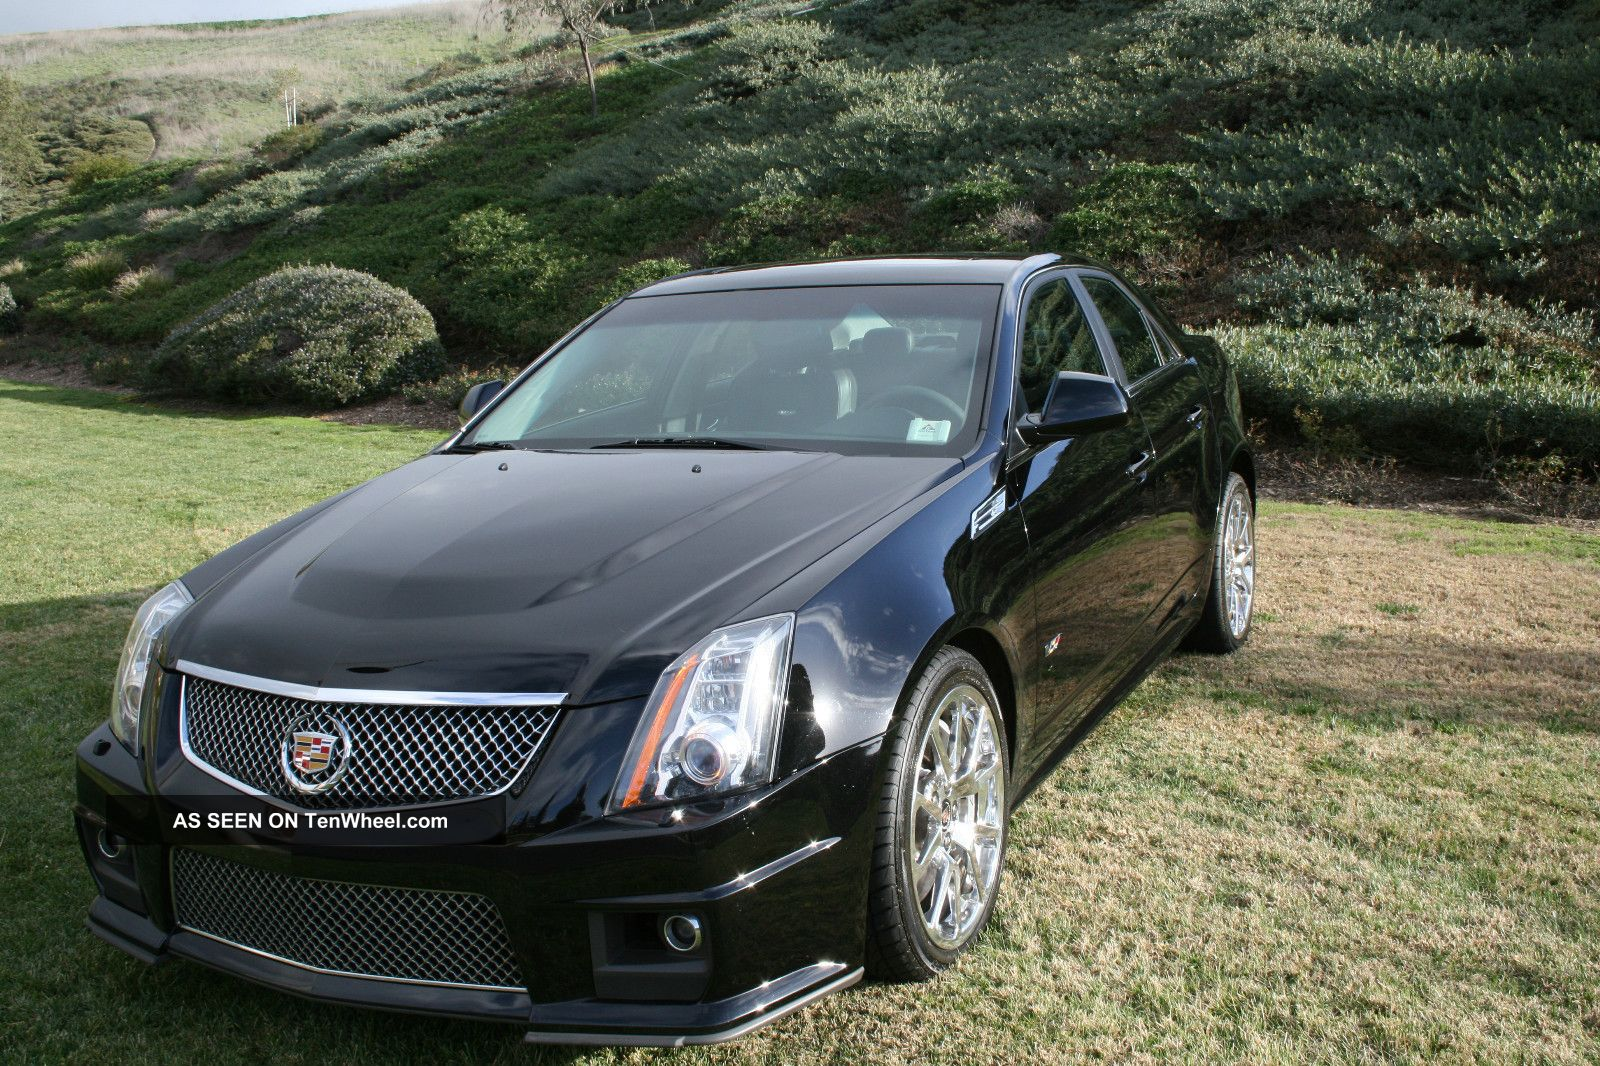 2010 cadillac cts v sedan 4 door 6 2l. Black Bedroom Furniture Sets. Home Design Ideas